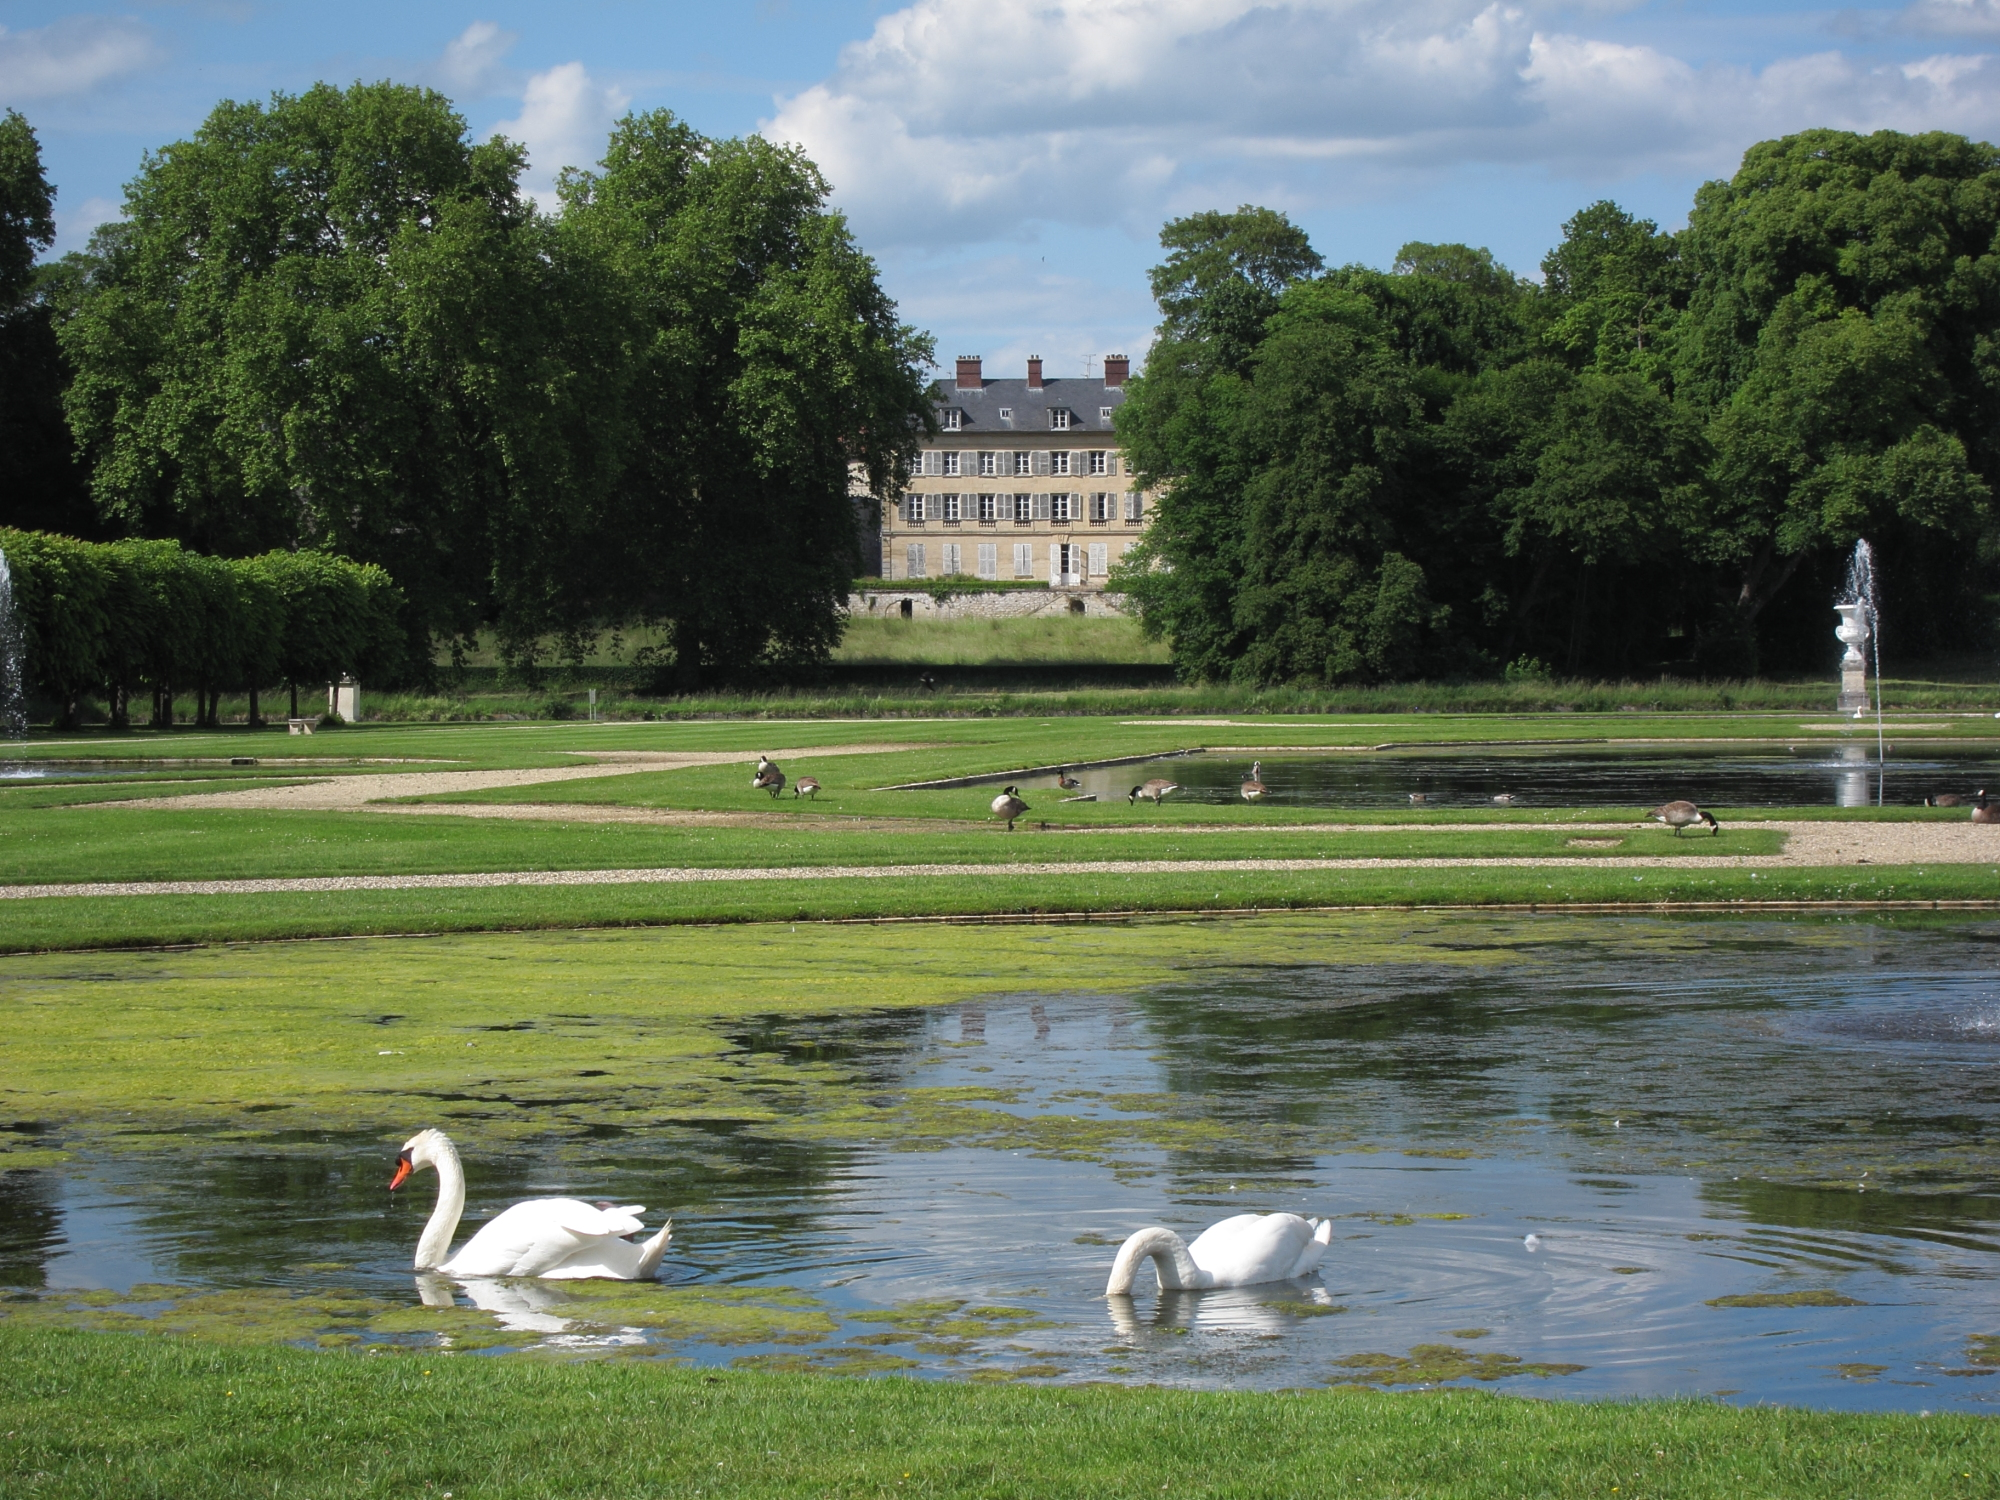 The French garden designed by Le Nôtre at the Château de Chantilly.